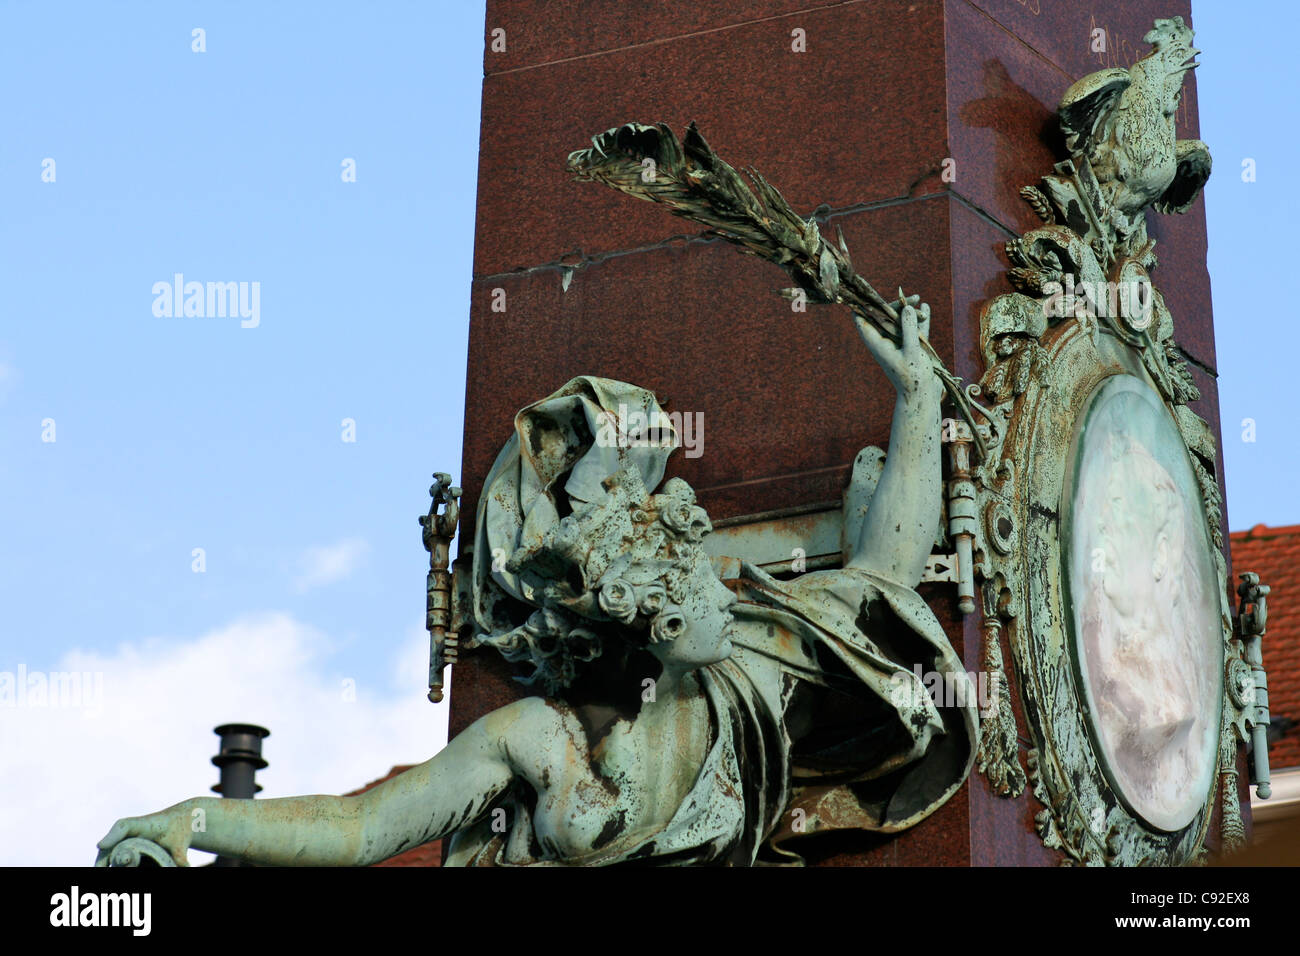 Bronze figure on the base of the granite monument of Archangel Michael slaying Satan on a granite column the patron - Stock Image